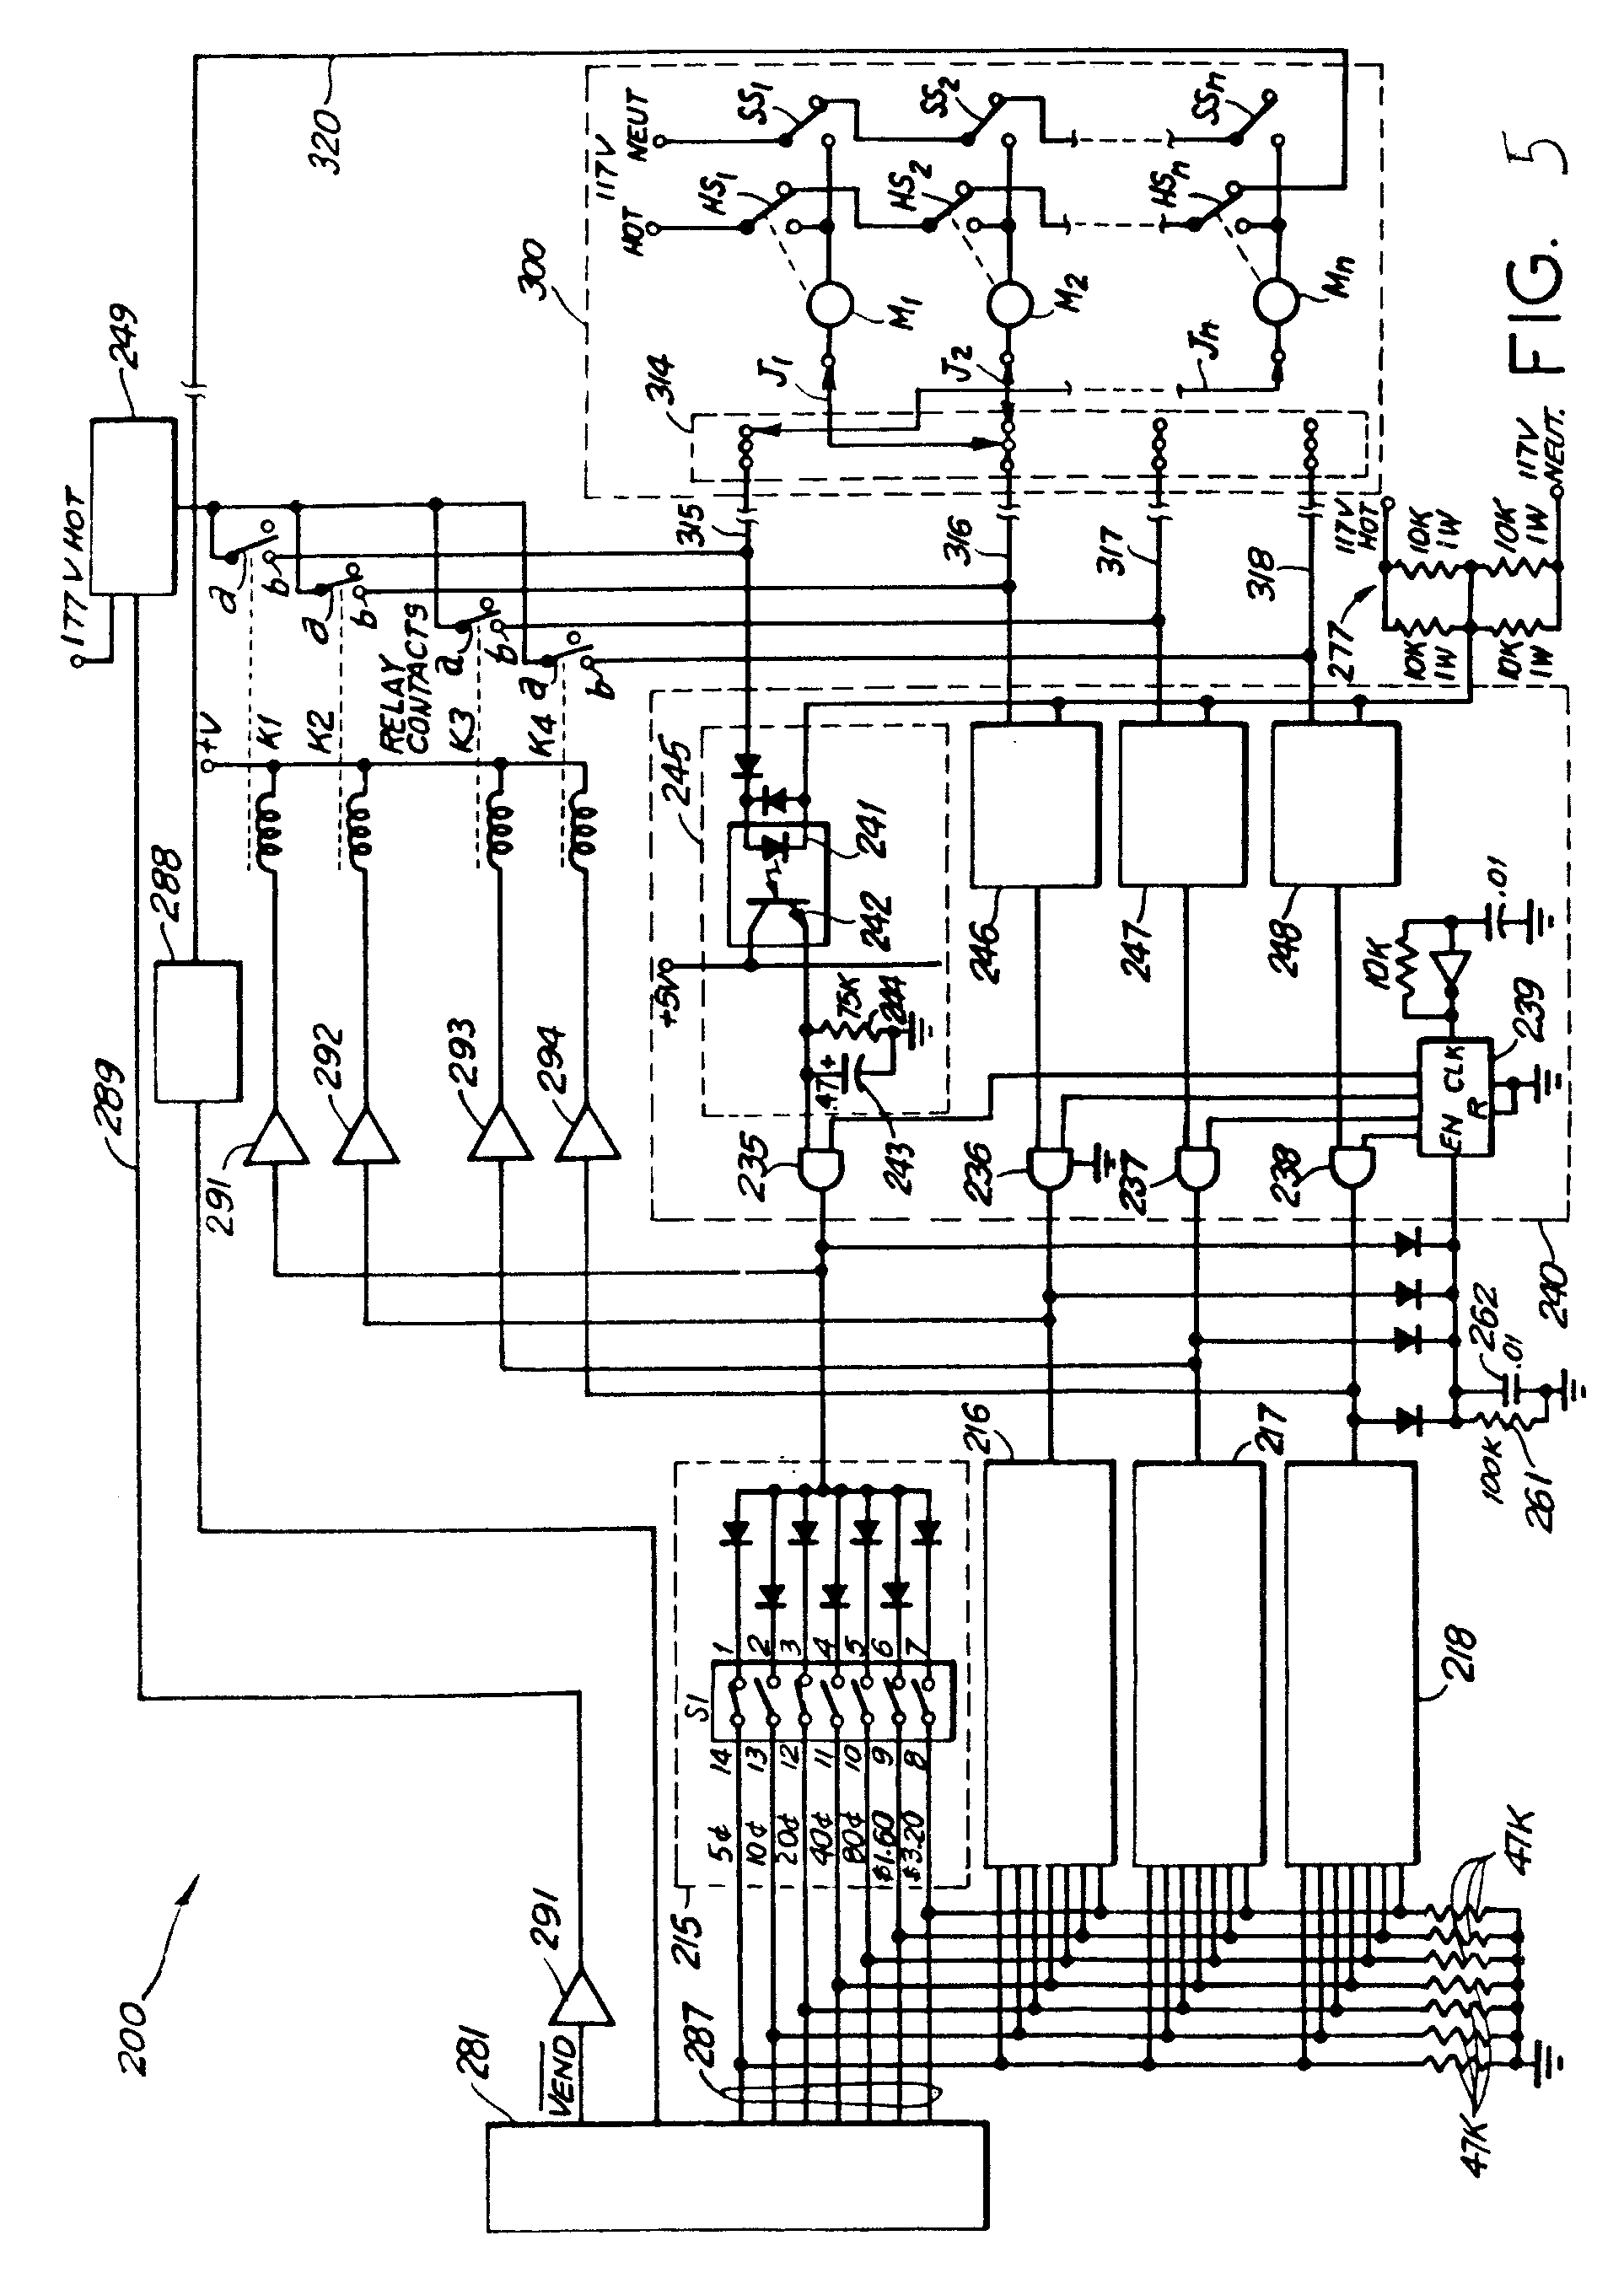 Mars Wiring Diagram Simple Guide About Patent Ep0178811b1 Vending Machine Power Switching 10587 33430